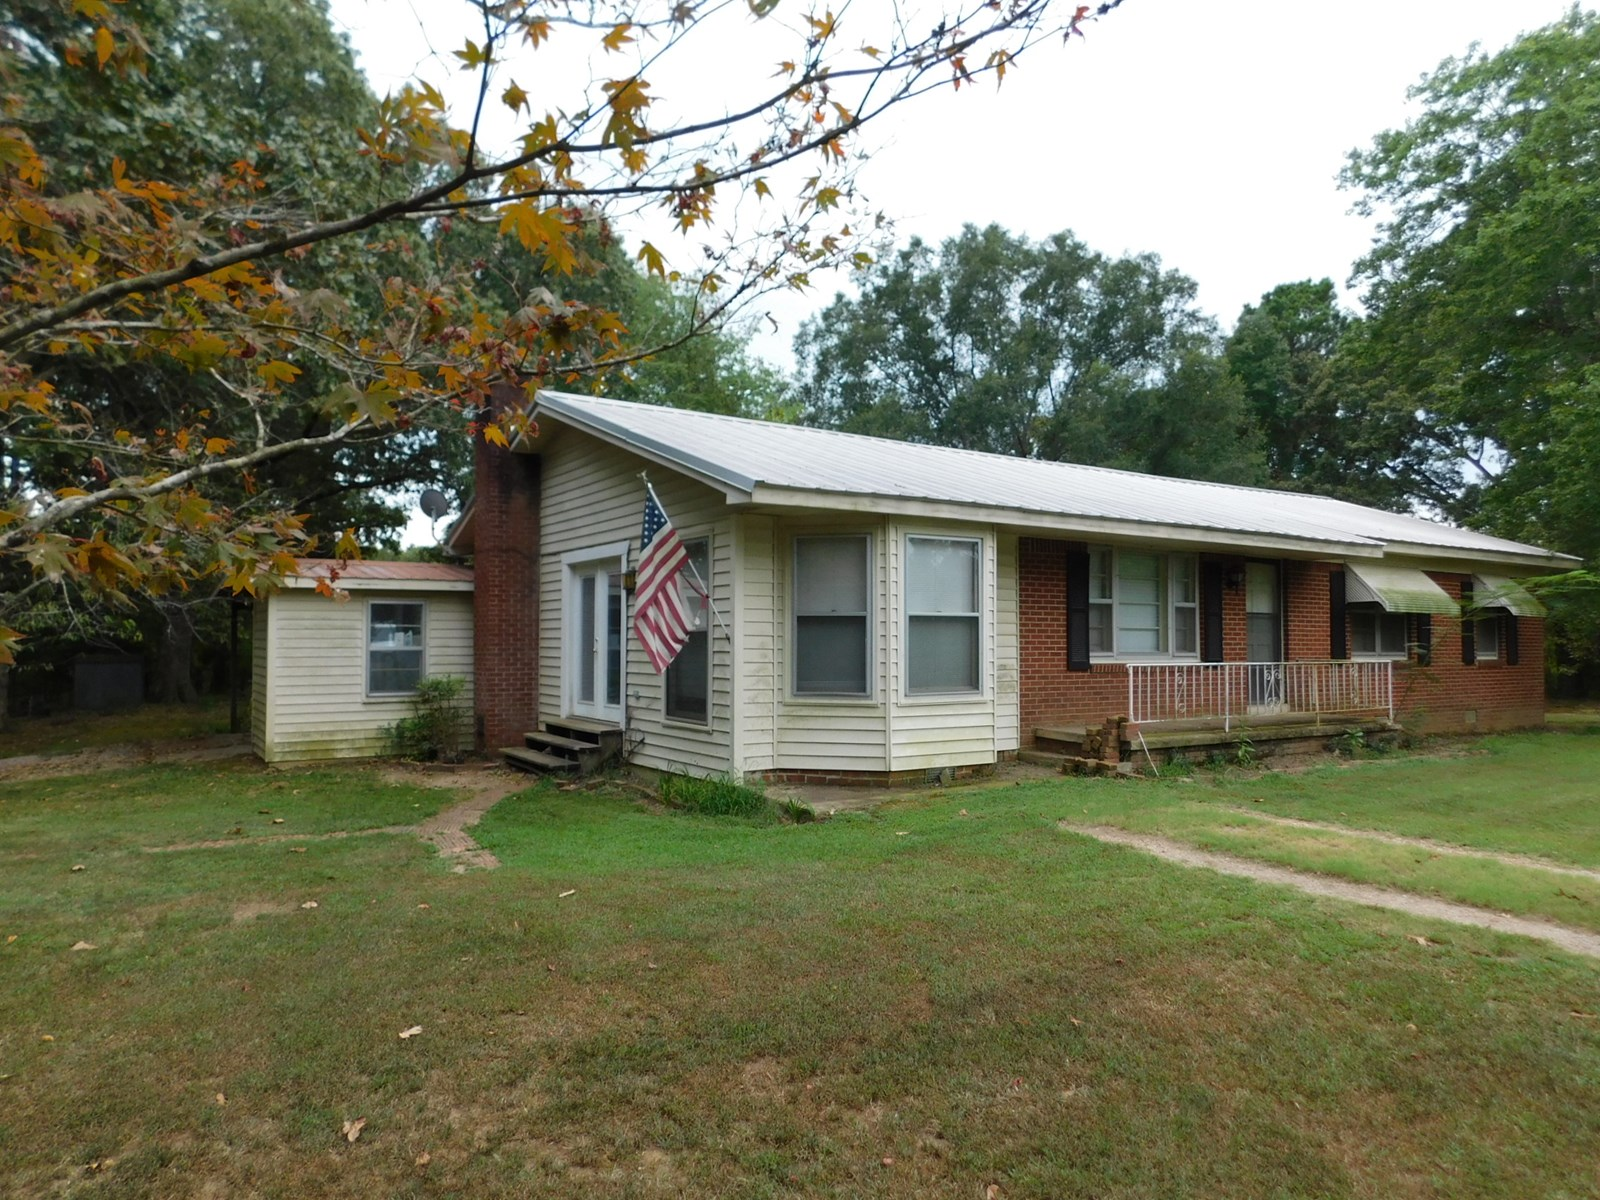 REMODELED COUNTRY BRICK HOME FOR SALE